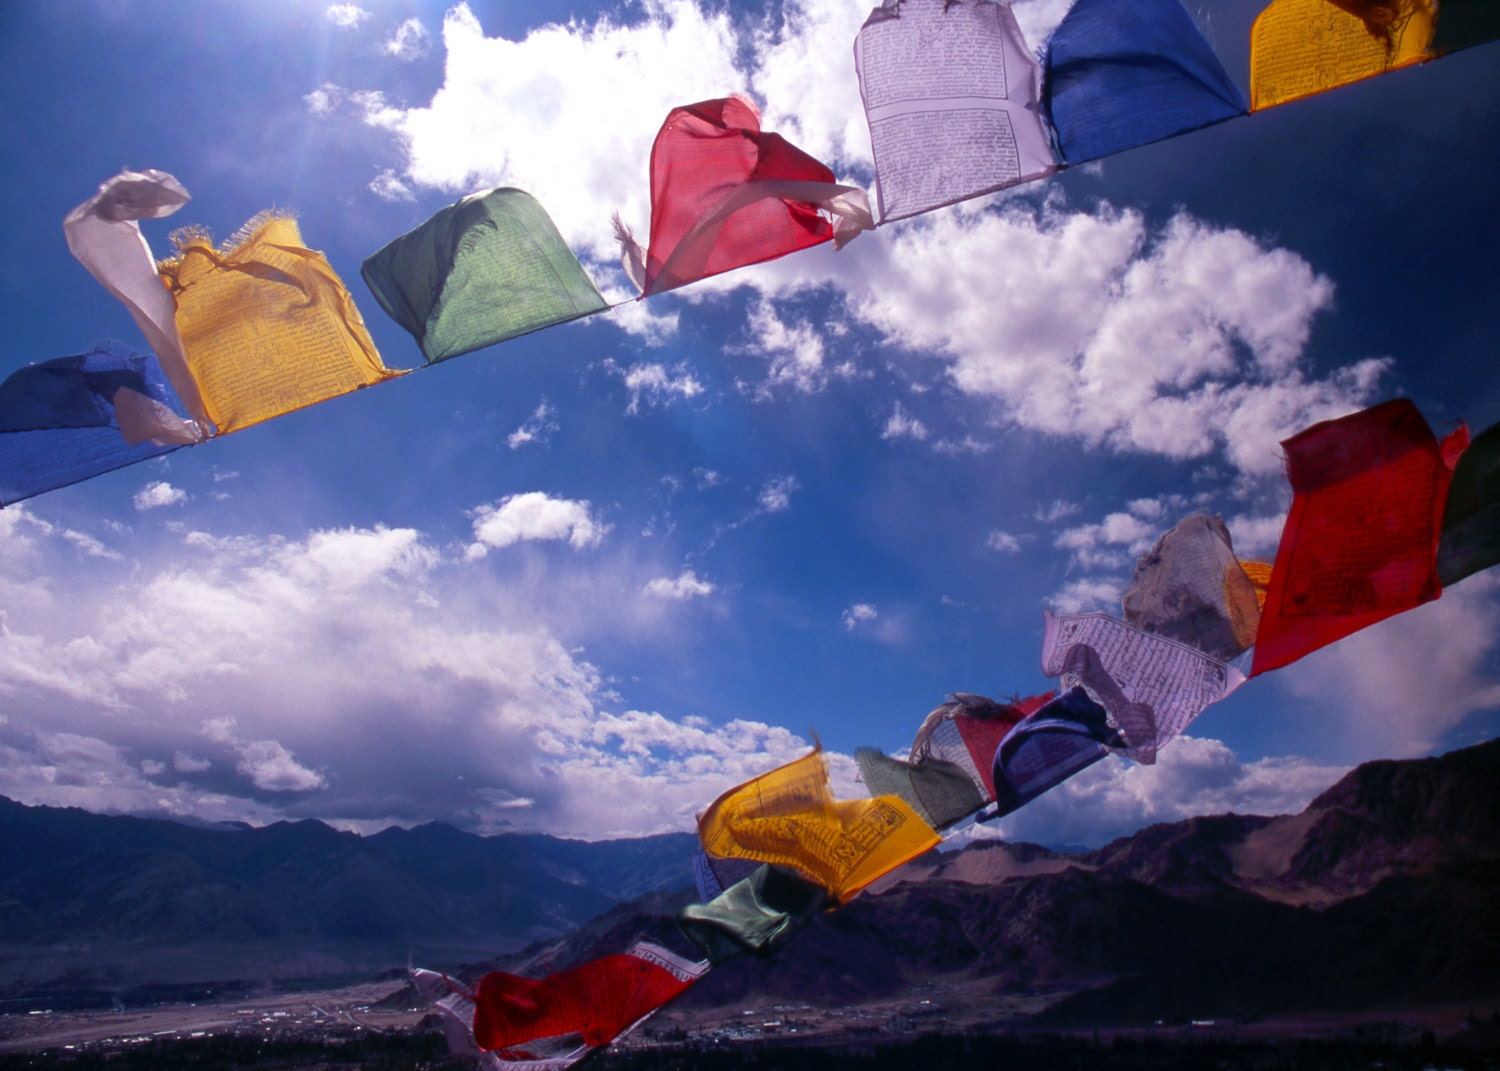 Tibetan Prayer Flags Ladakh Ii 5x7 Print In By